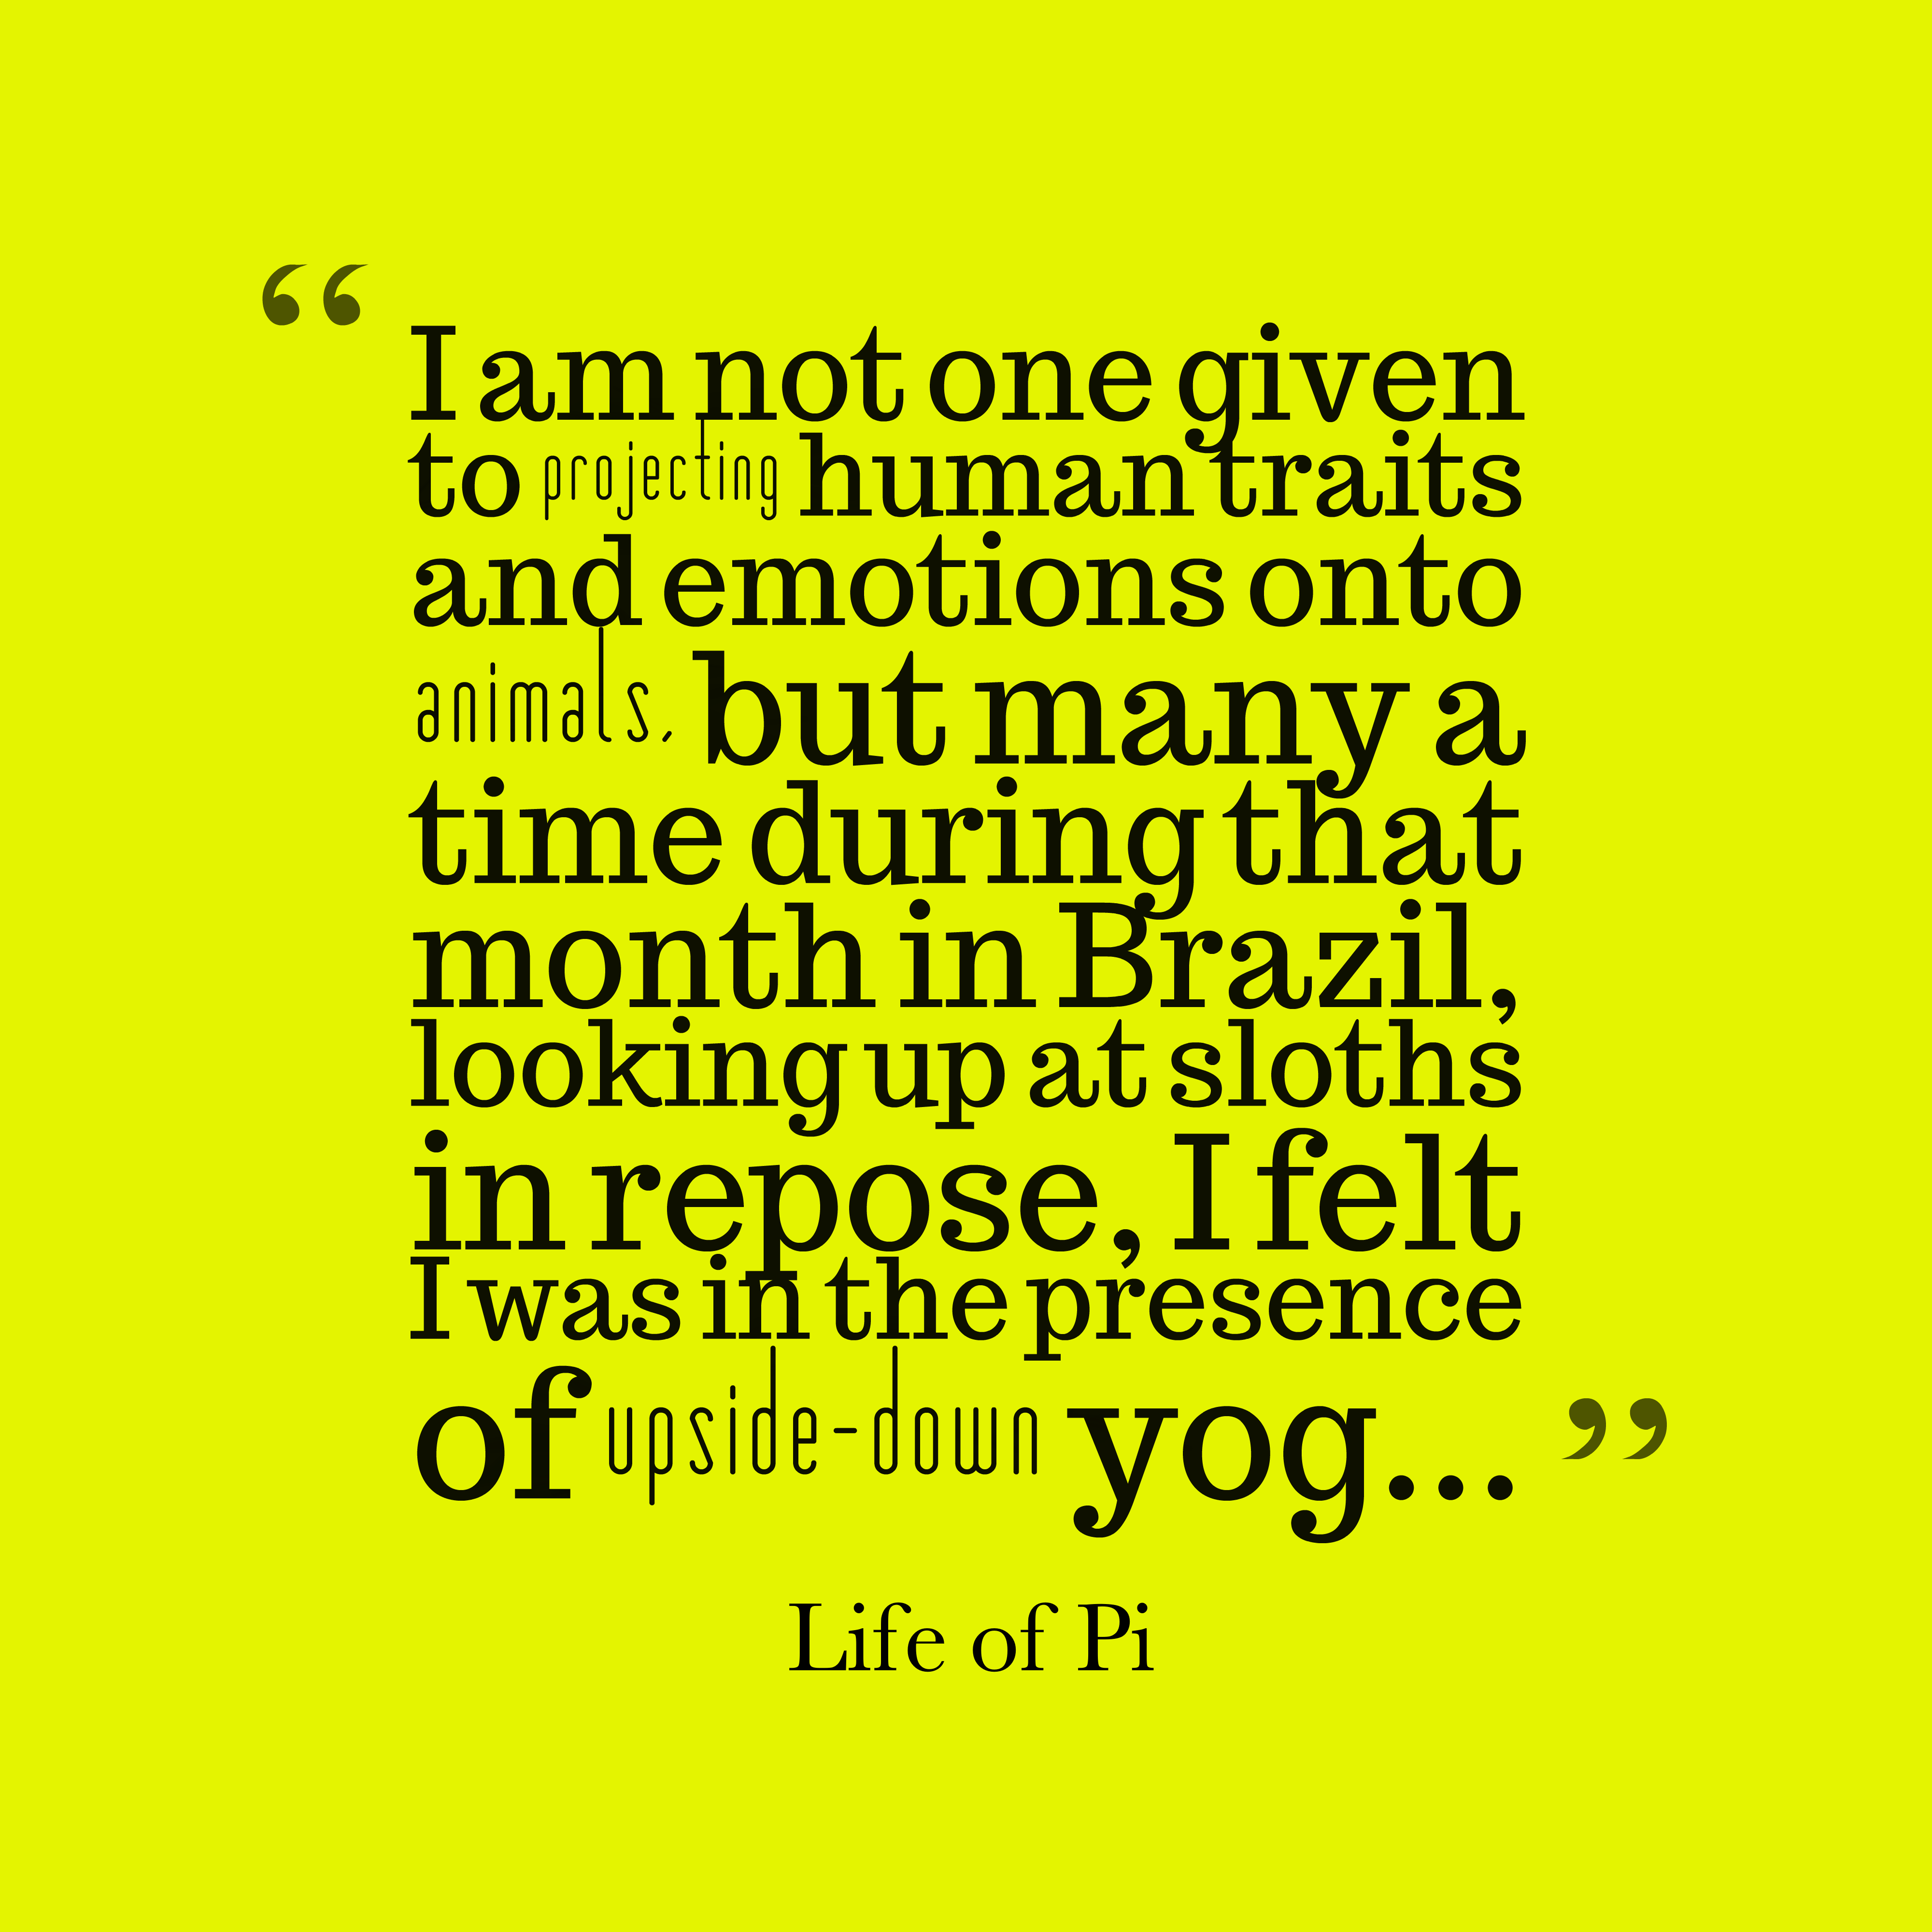 Life Of Pi Quote About Spirituality